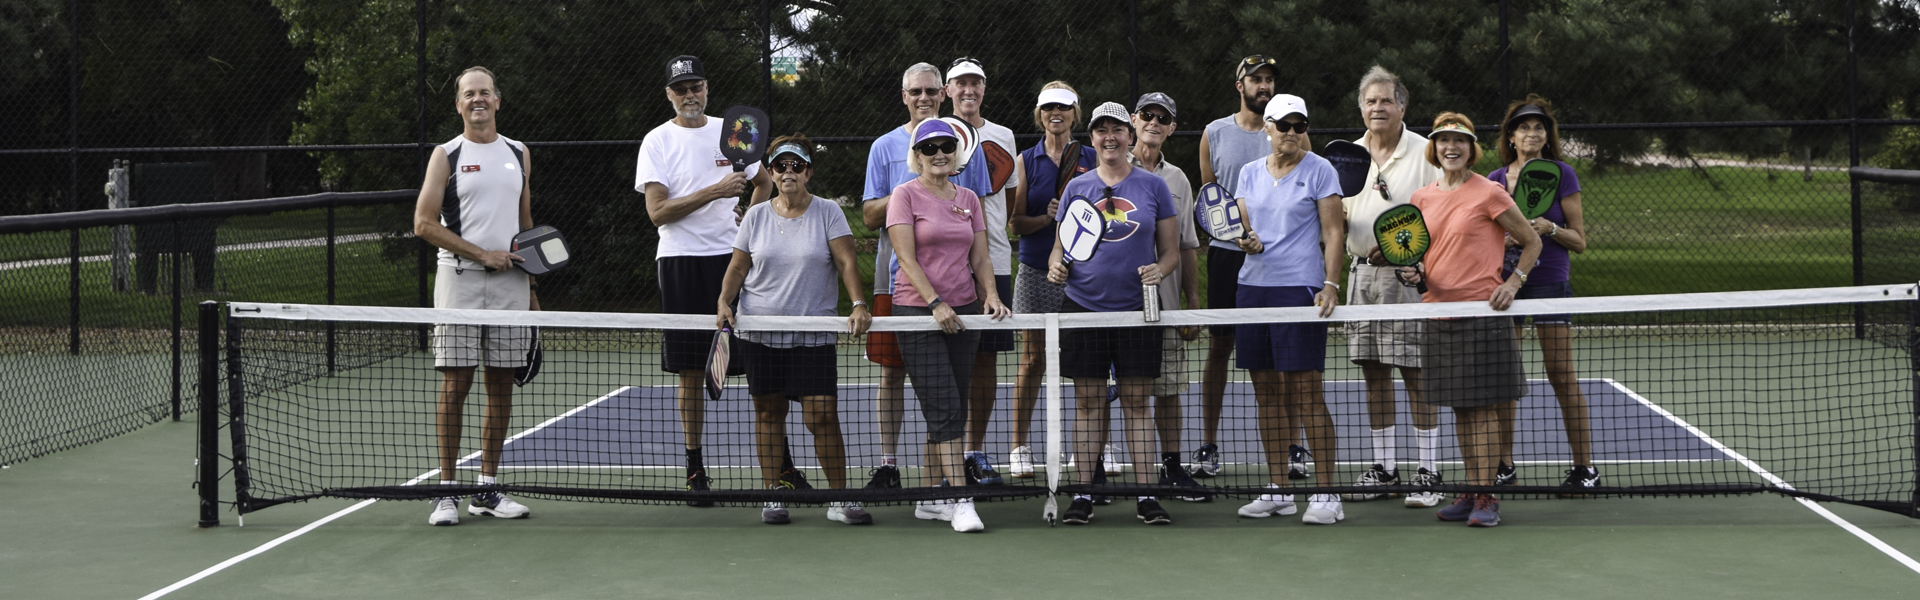 Pickleball_Revolution_Slider_2019